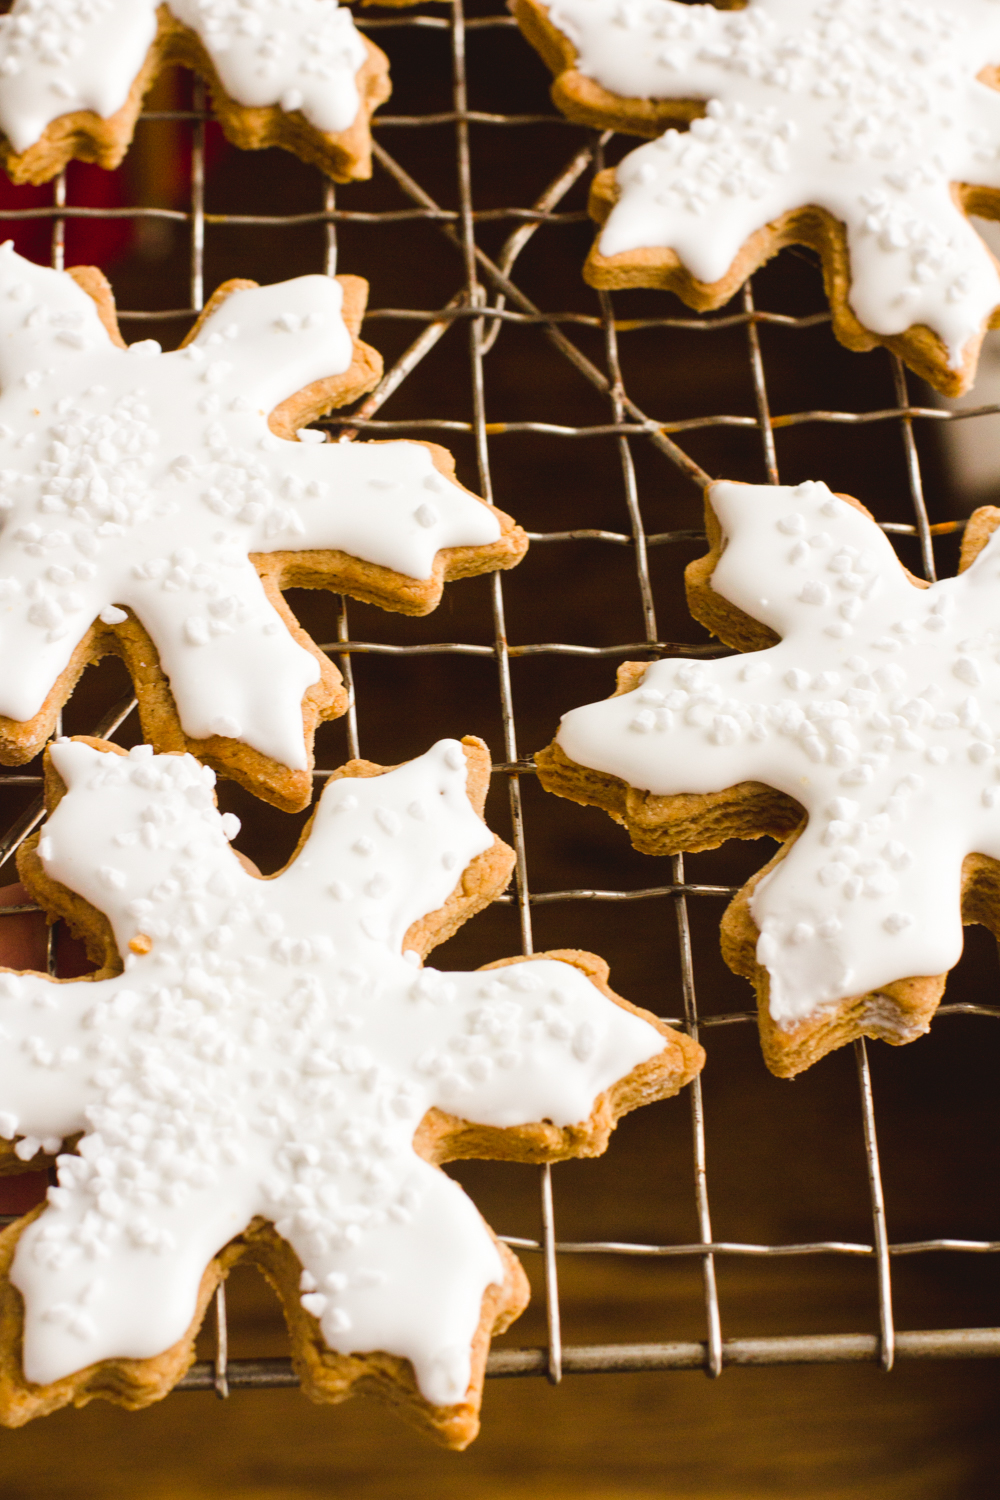 Frosted Gingerbread Cookies - Marisa Curatolo